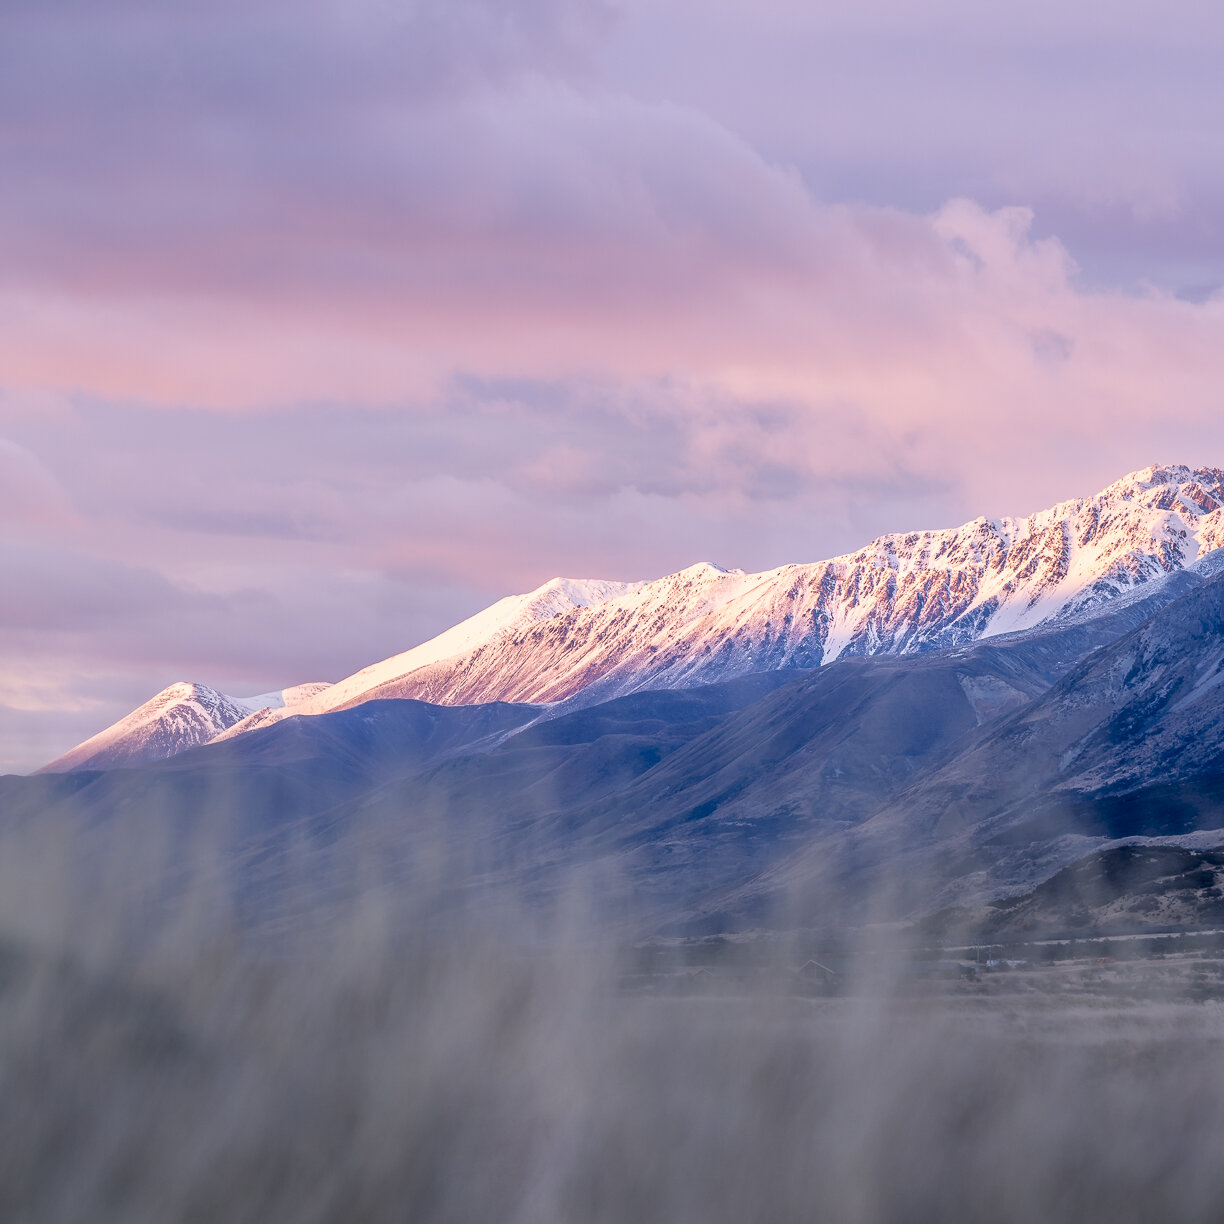 Sunset / Aoraki/Mt Cook National Park